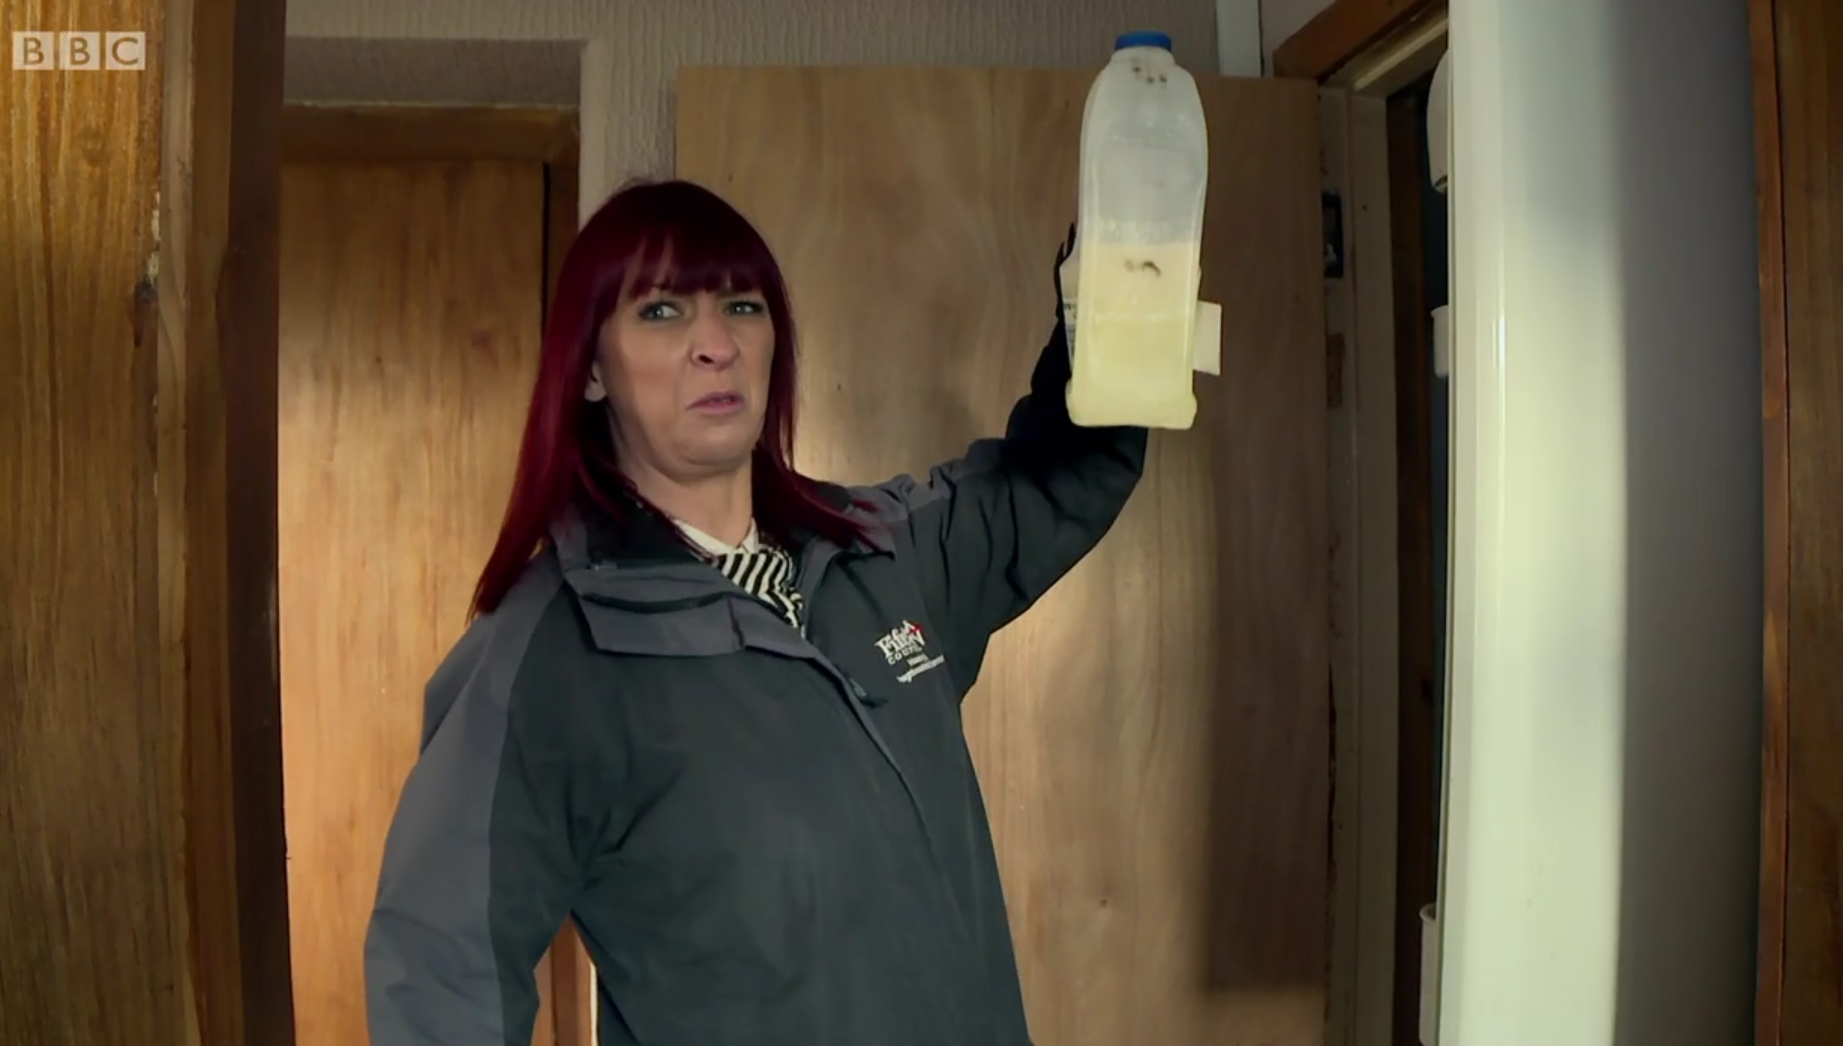 Housing officer Karen checks a property in Collydean, Glenrothes, as part of BBC documentary The Council.